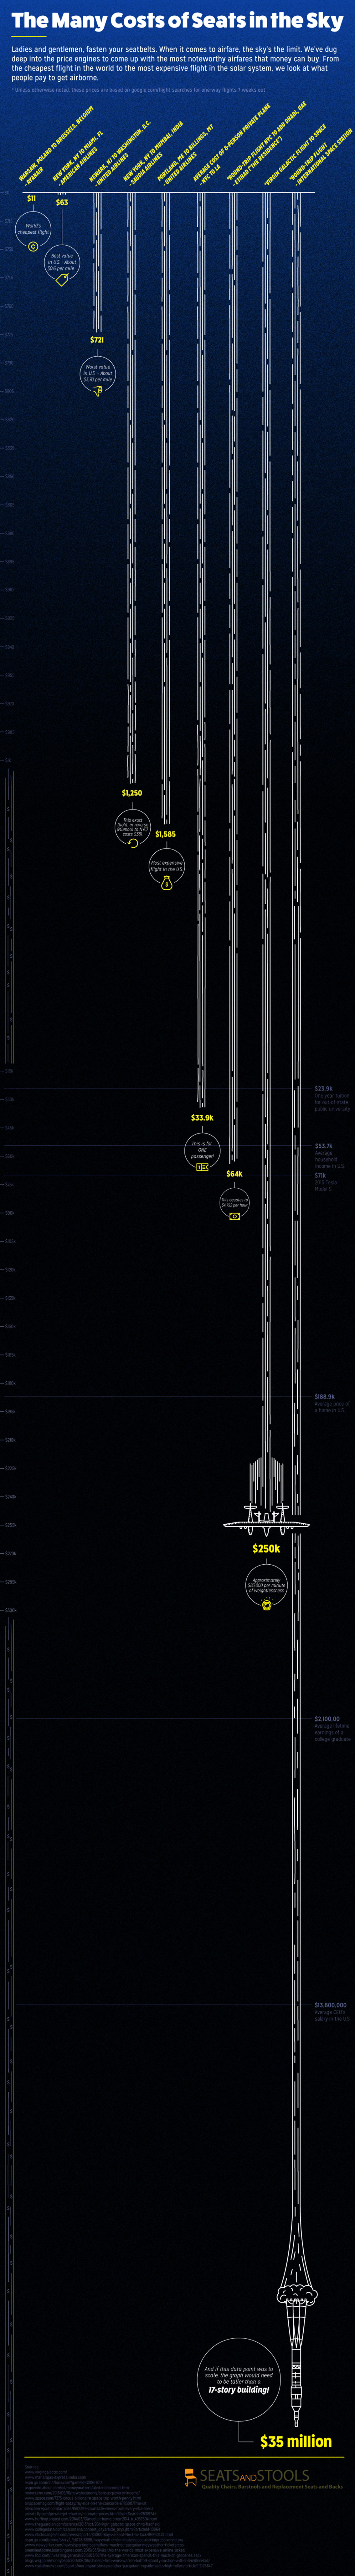 Cheapest and Most Expensive Flights in the World Infographic